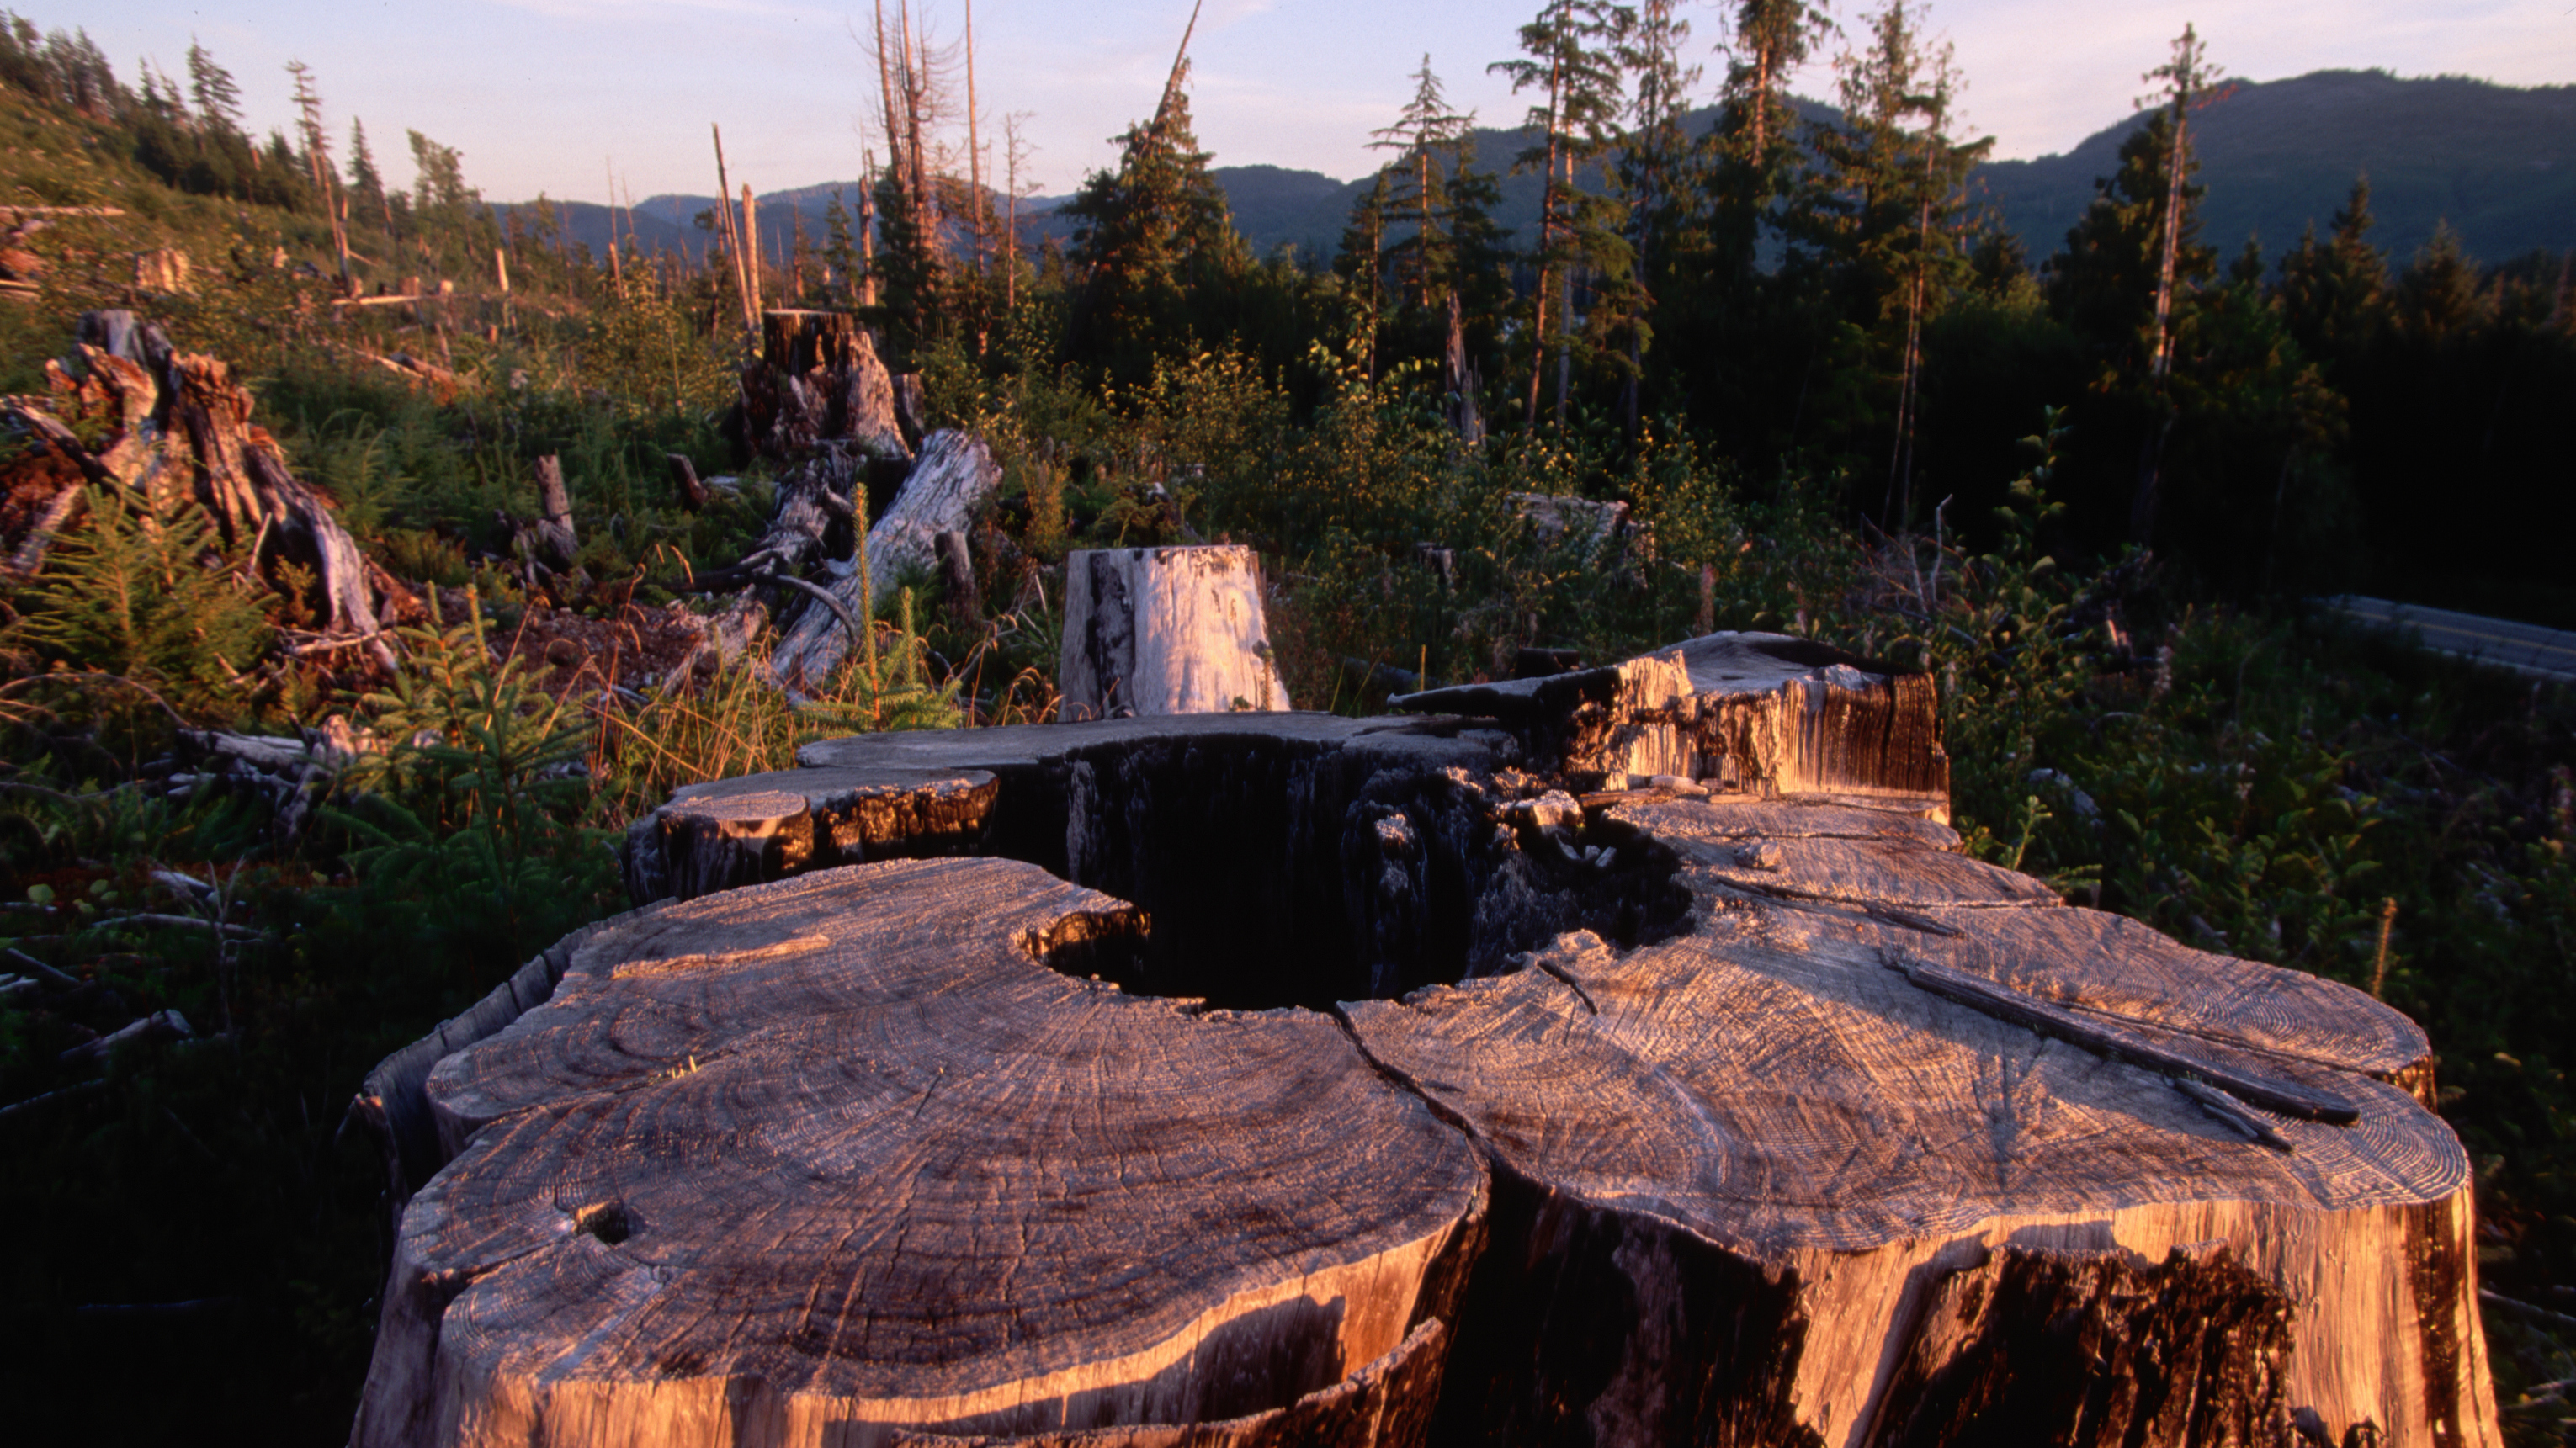 For Many, Issue Of Logging In America's Largest National Forest Cuts Deep